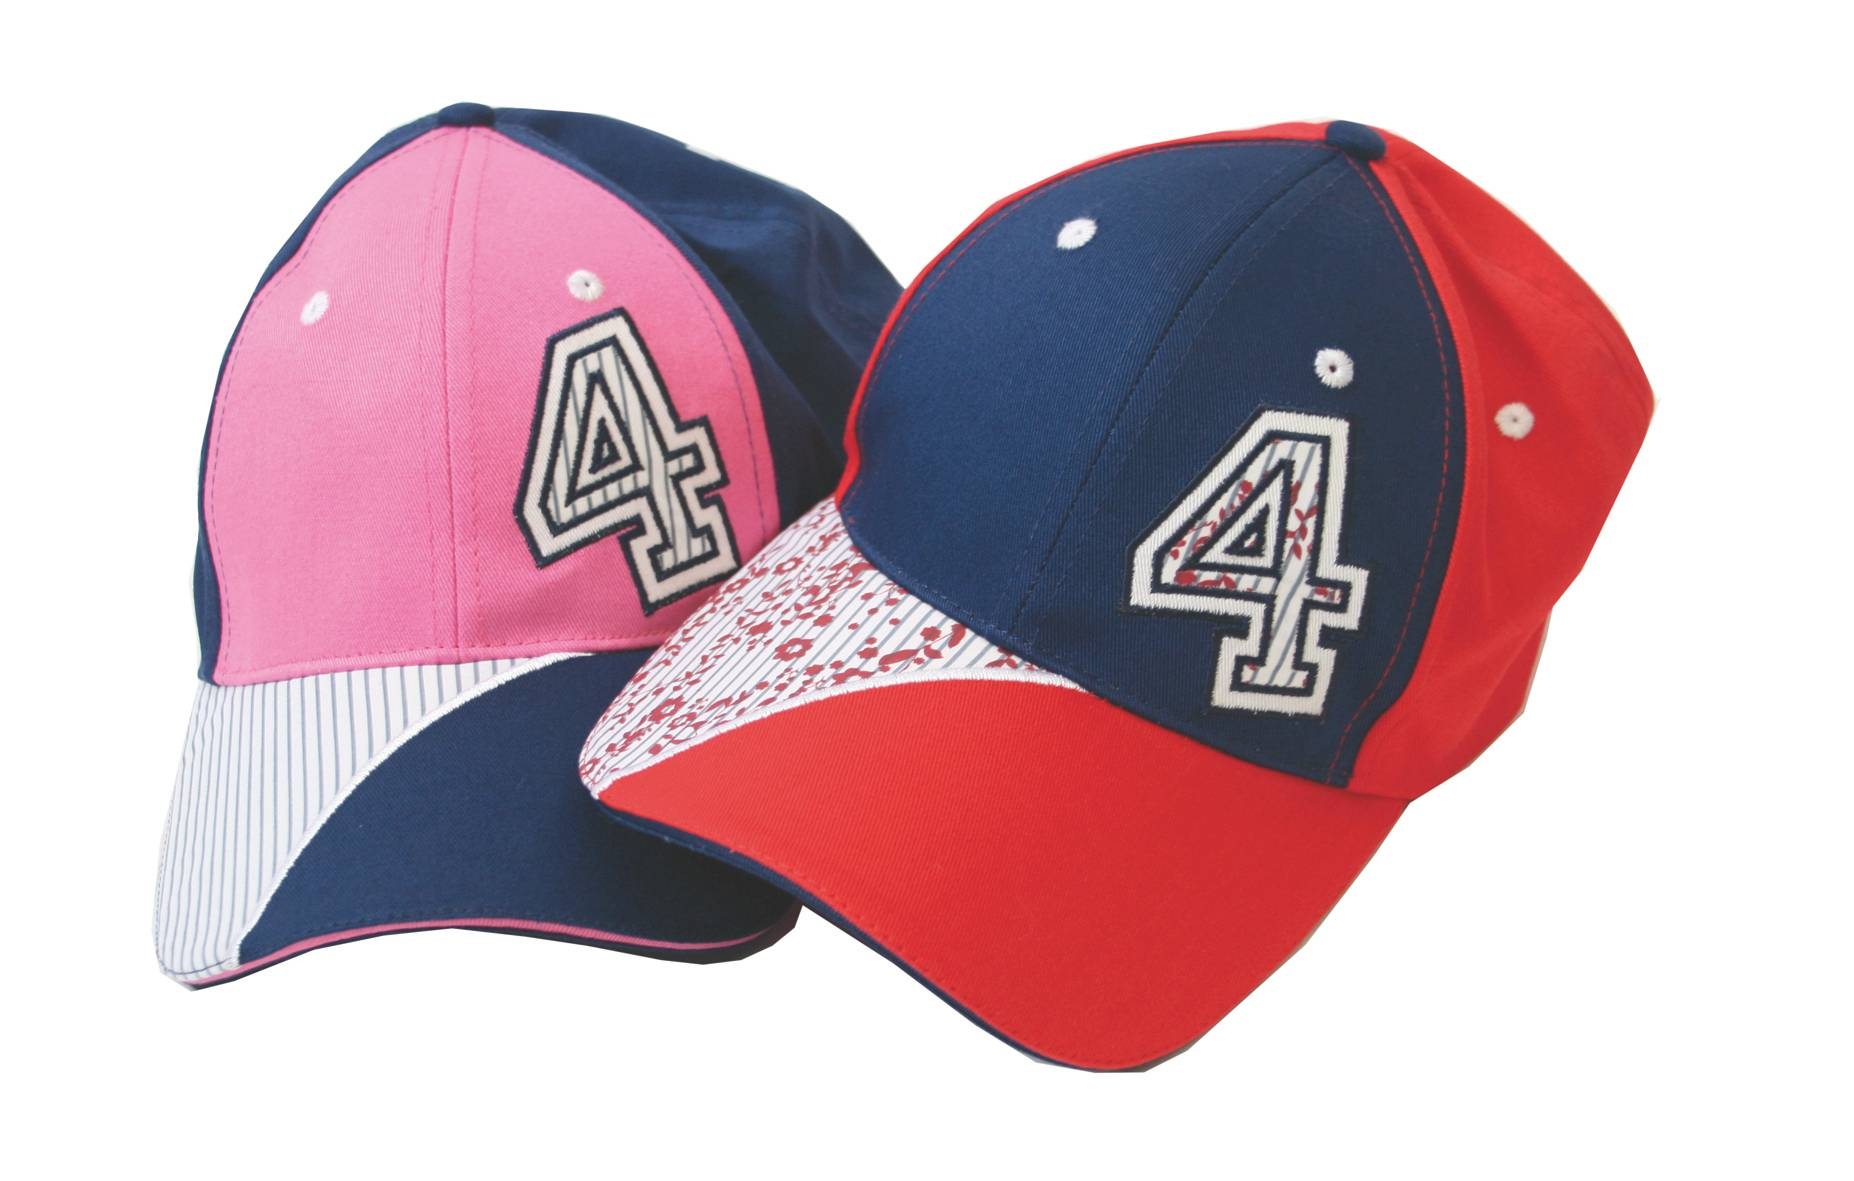 Horseware Baseball Caps